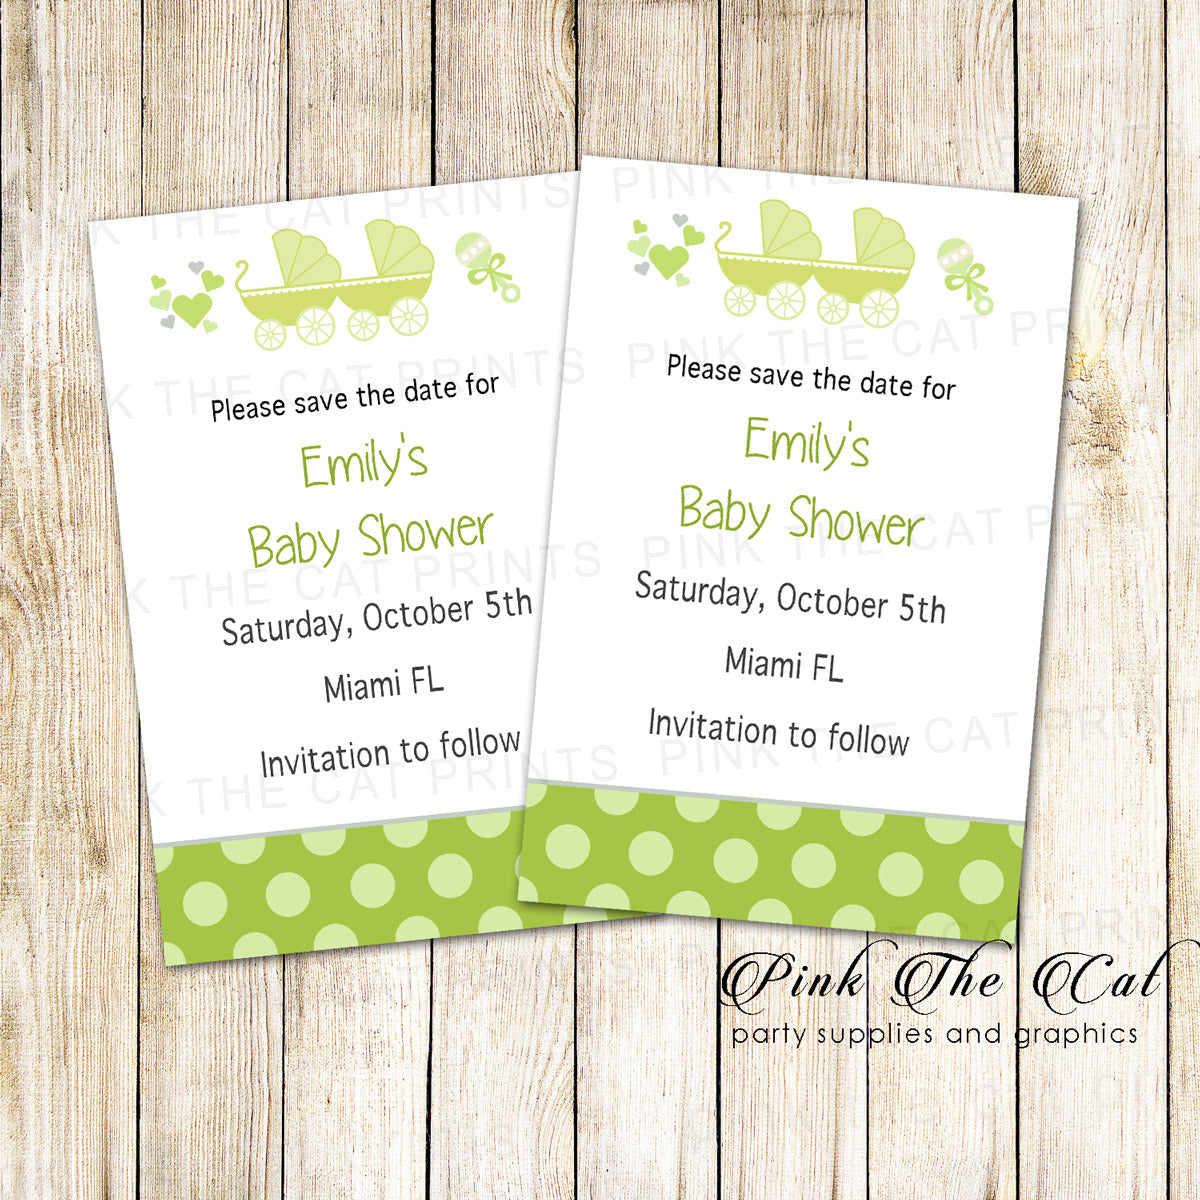 30 Cards Stroller Baby Shower Save The Date Green Pink The Cat